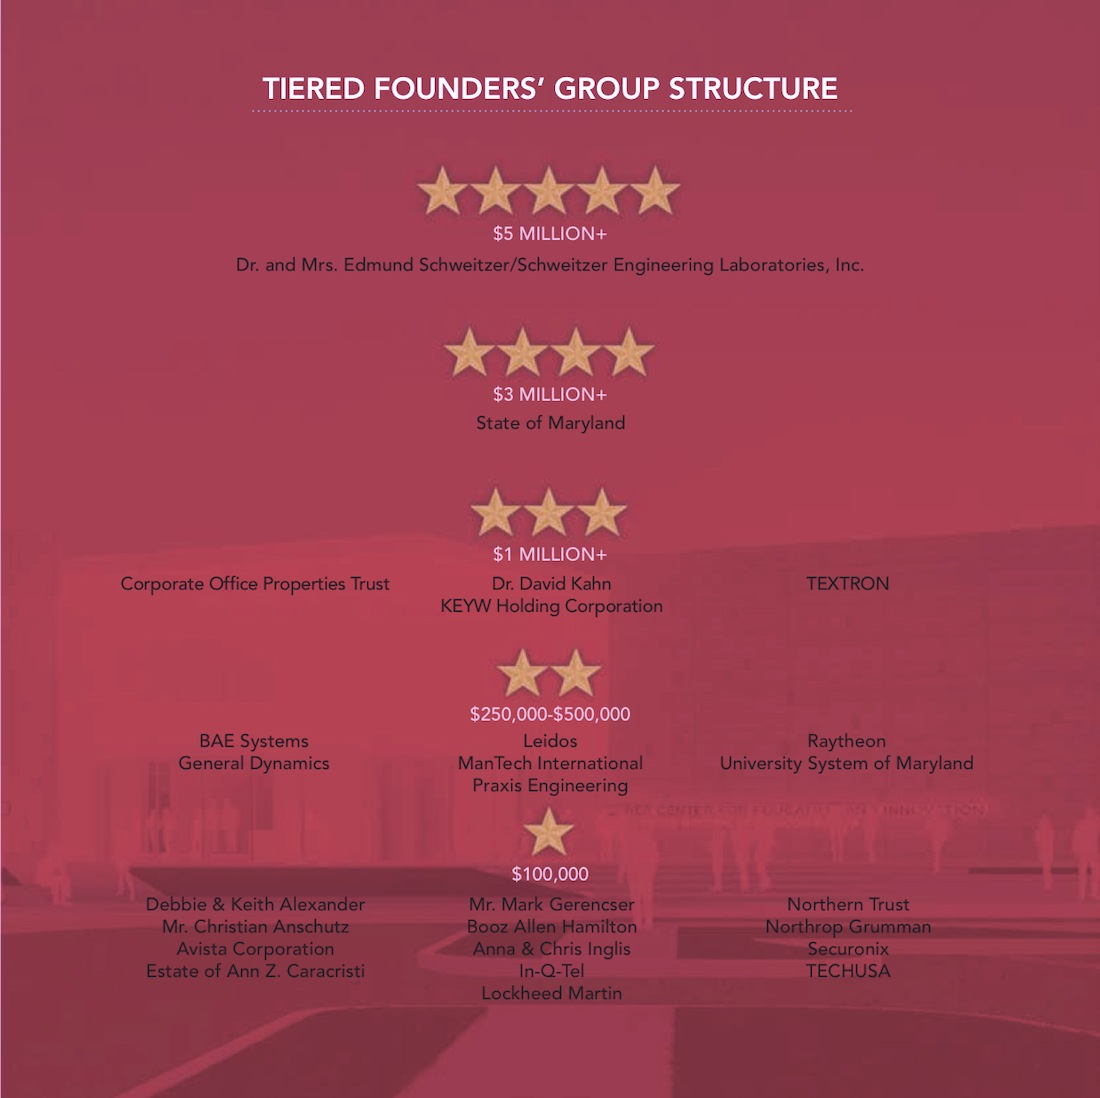 Tiered Founders' Group Structure - Click for larger view.